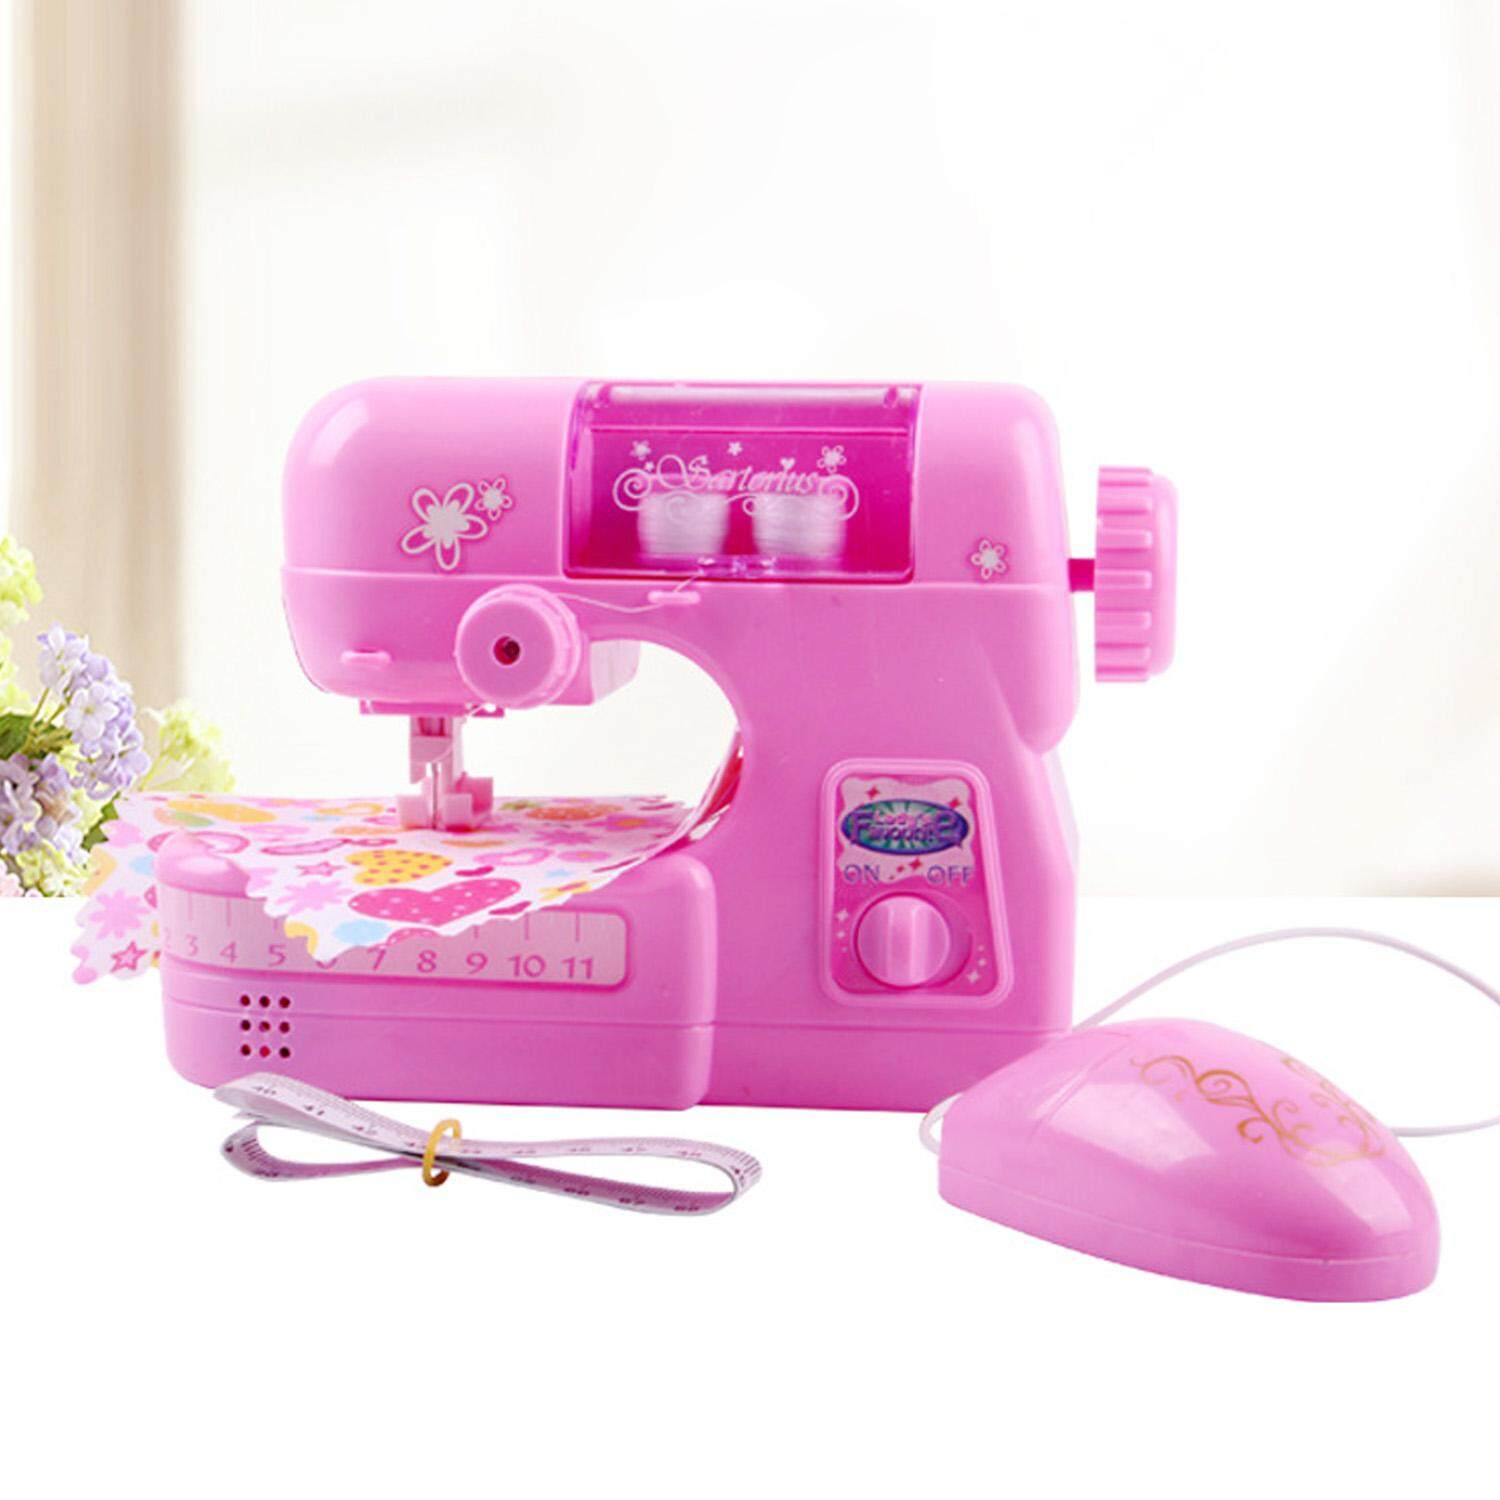 88522224350ee Mini Electric Sewing Machine Pretend Play Educational Toy for Kids Children  Girls Birthday Christmas Gift